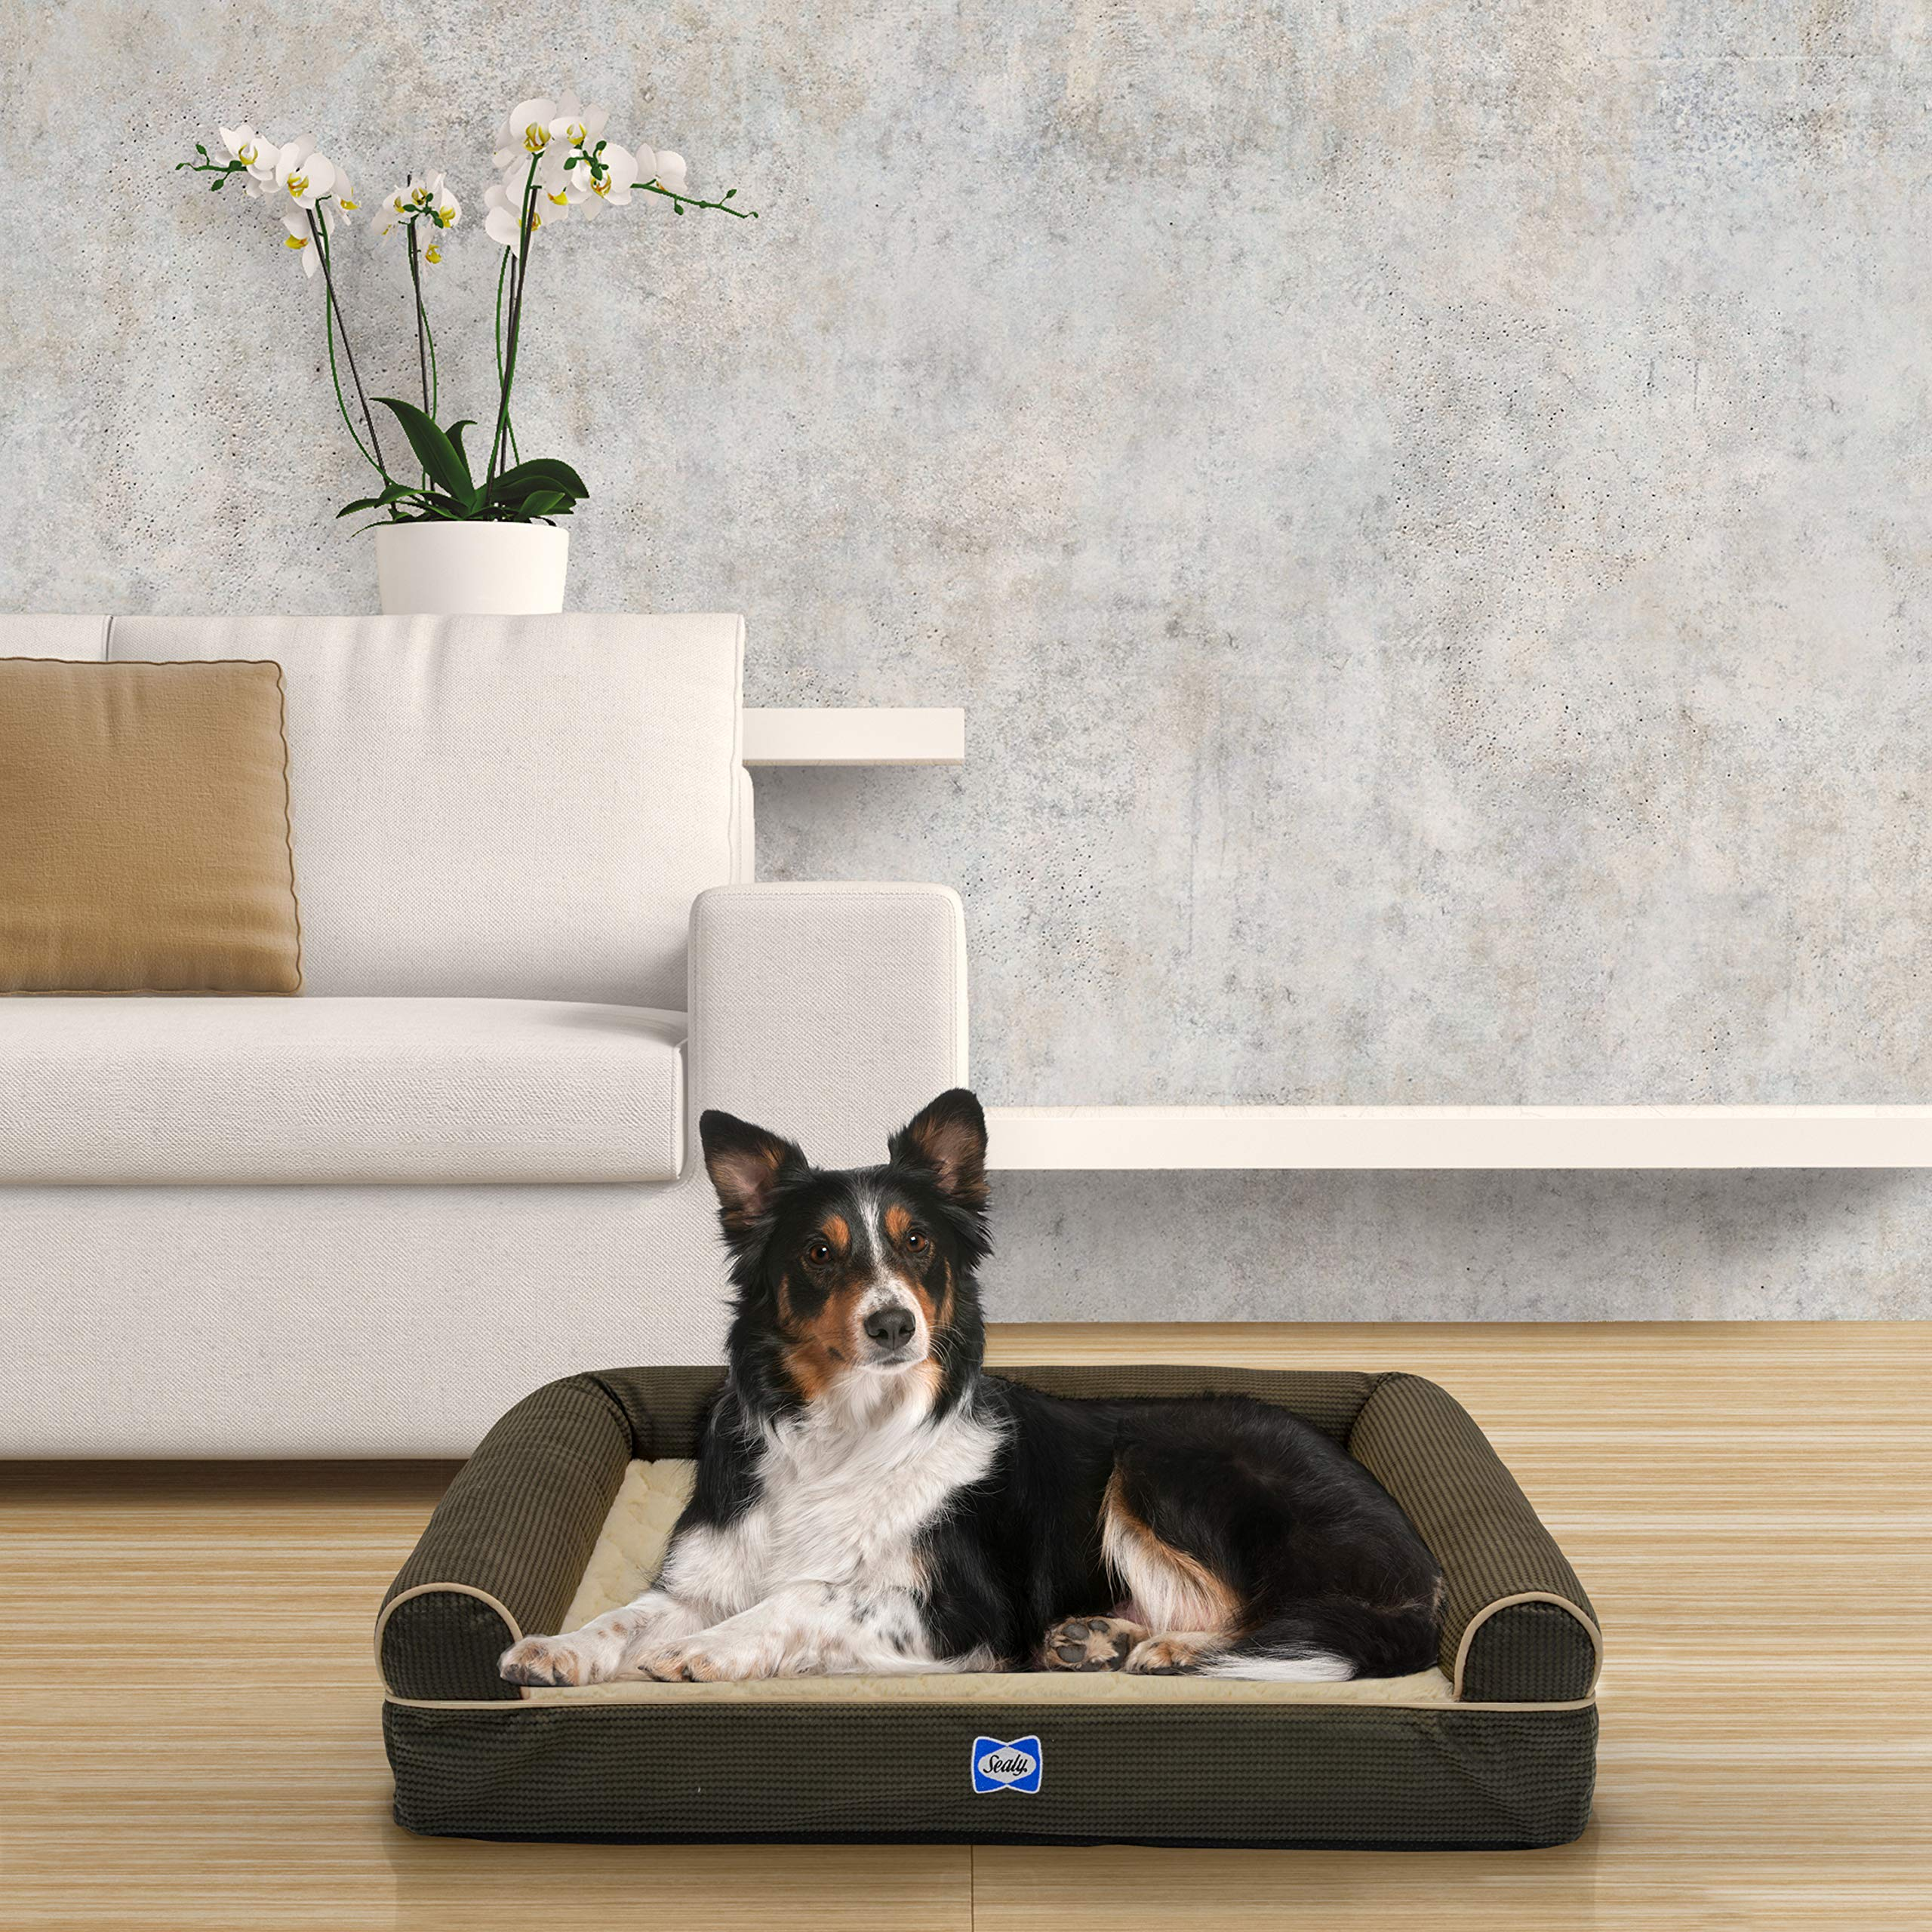 Sealy Ultra Plush Sofa-Style Bolster Dog Bed Brown, Medium - Orthopedic Foam pet Bed with Machine Washable Plush Cover by Sealy